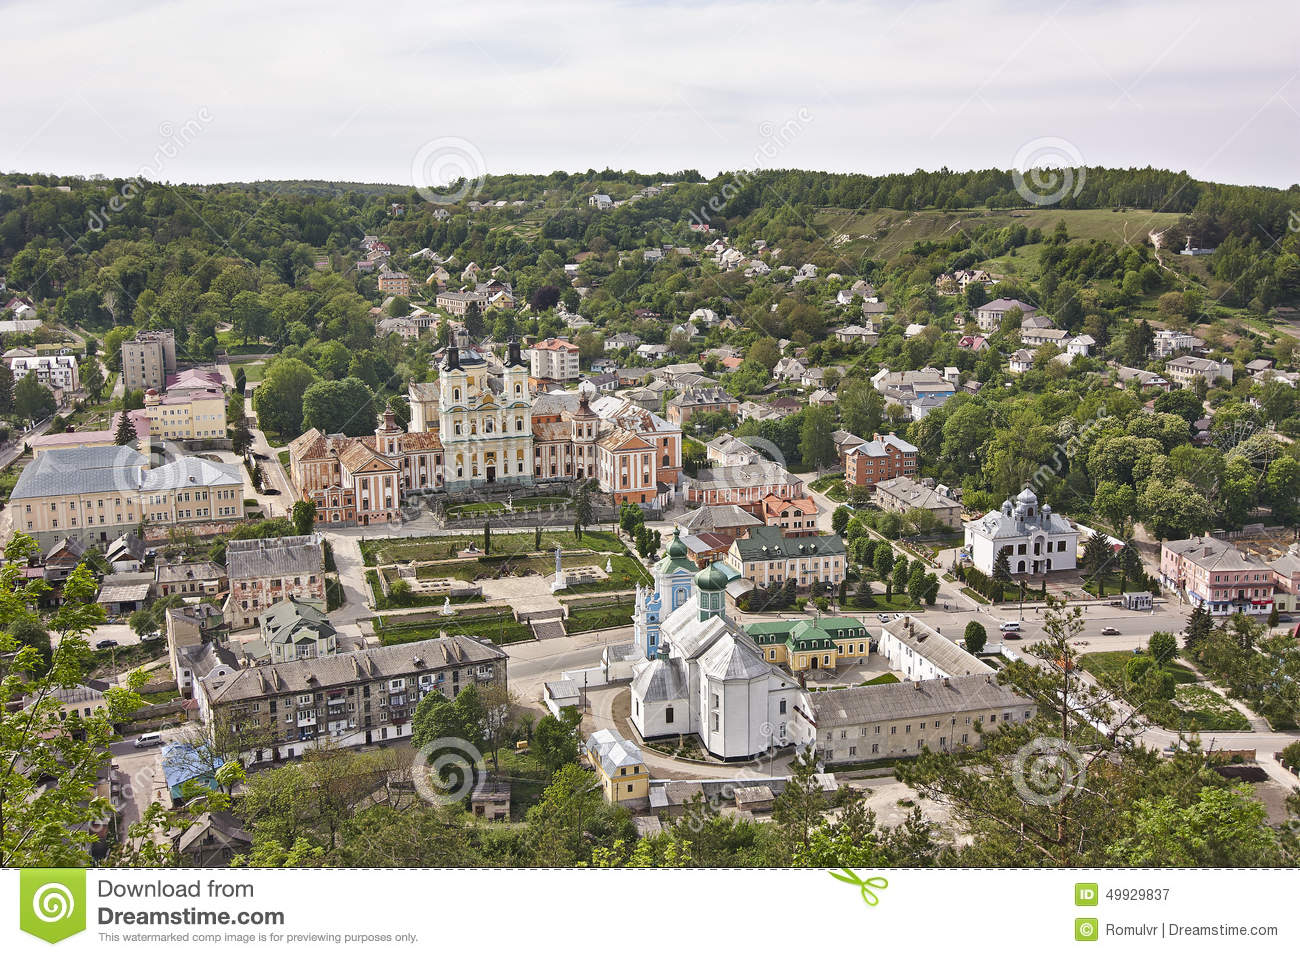 Optics of the Ternopil region: a selection of sites